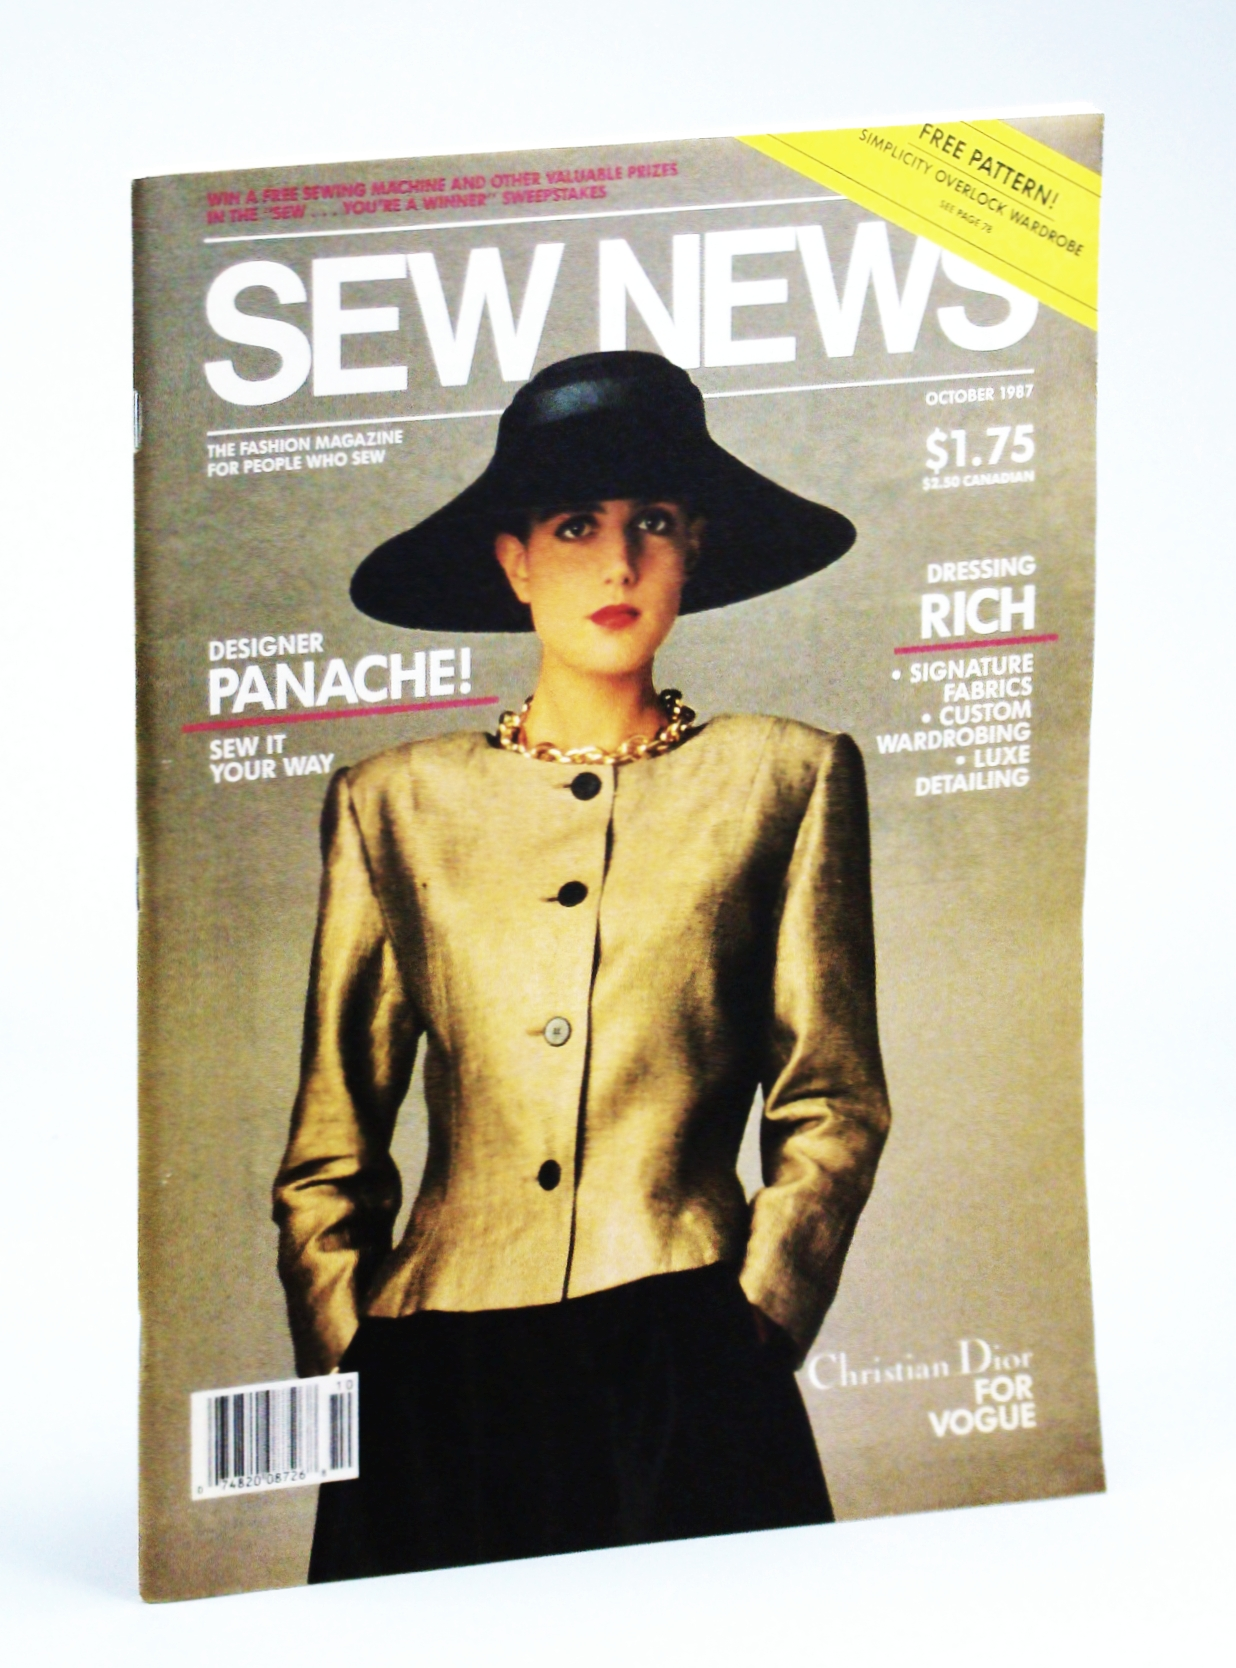 Image for Sew News - The Fashion Magazine For People Who Sew, Number 61, October [Oct.] 1987 - Designer Panache!